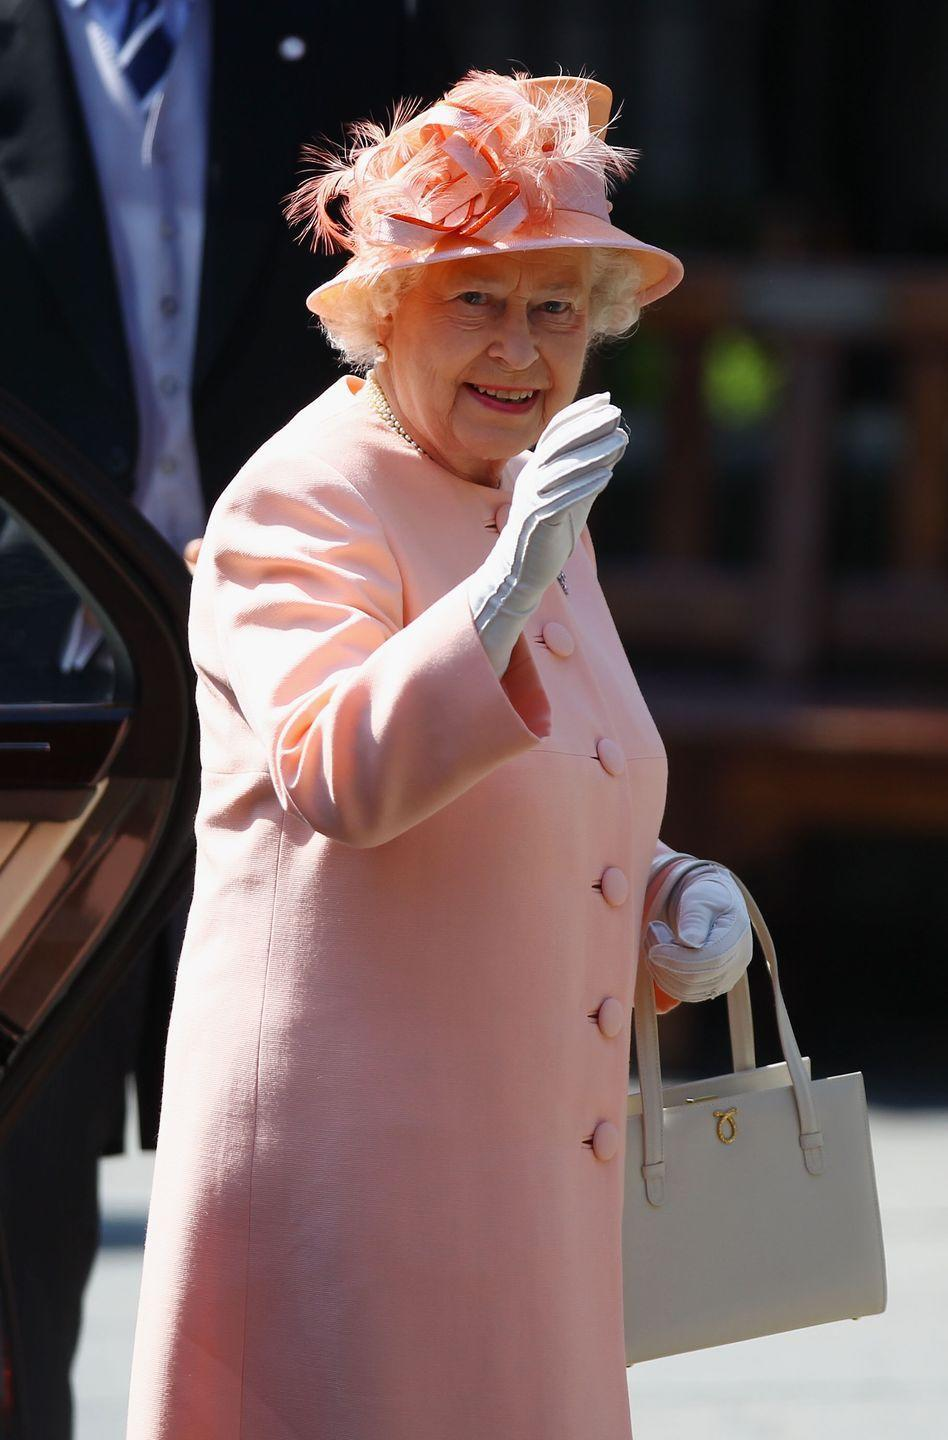 <p>The Queen loves a bright look. Here she is in a peachy-pink coat and hat outfit for her granddaughter's big day.</p>